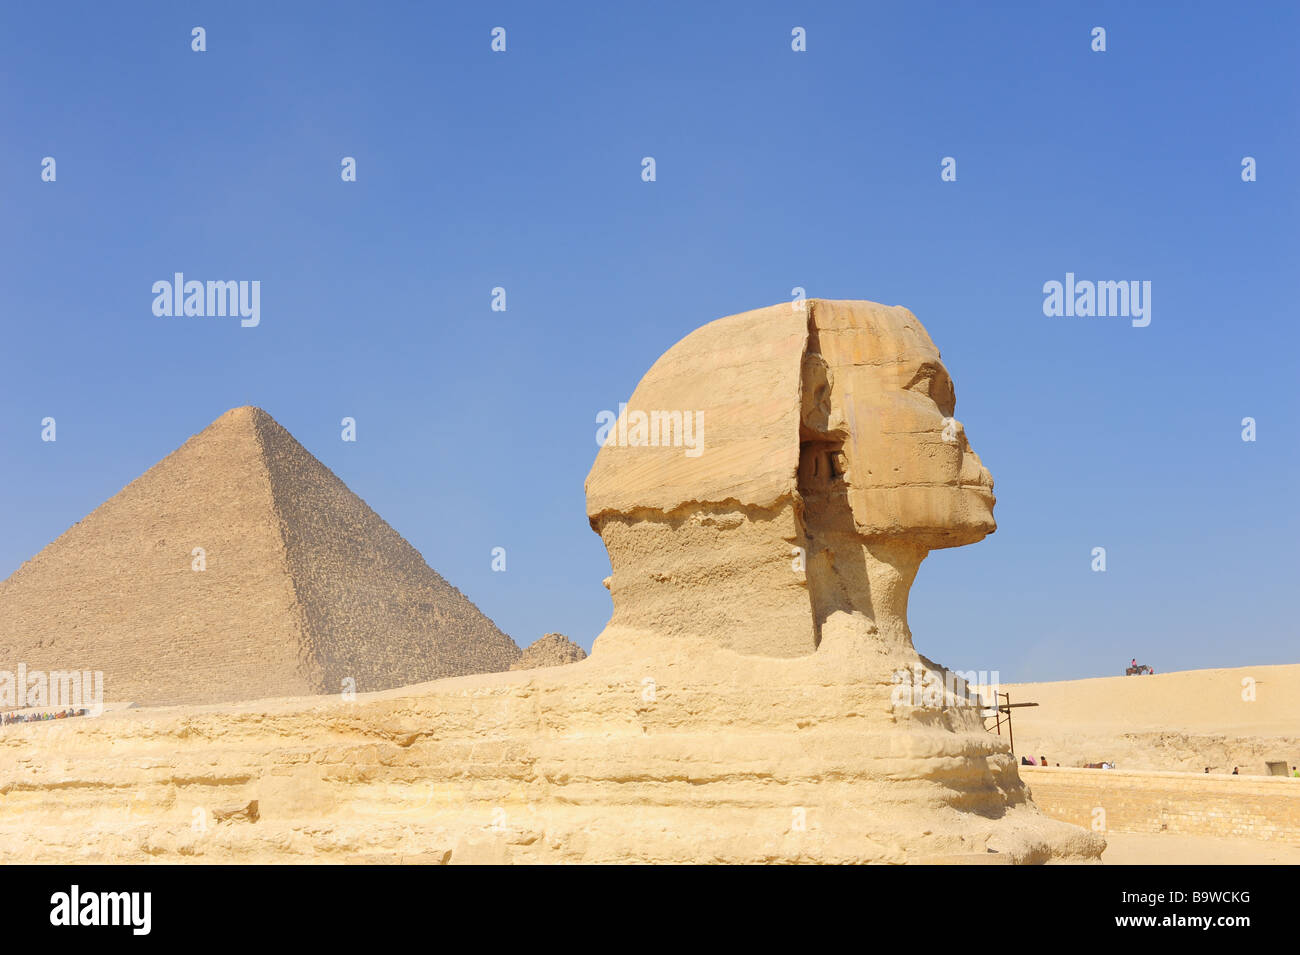 Egypt Giza The Great Pyramids and the Sphinx - Stock Image